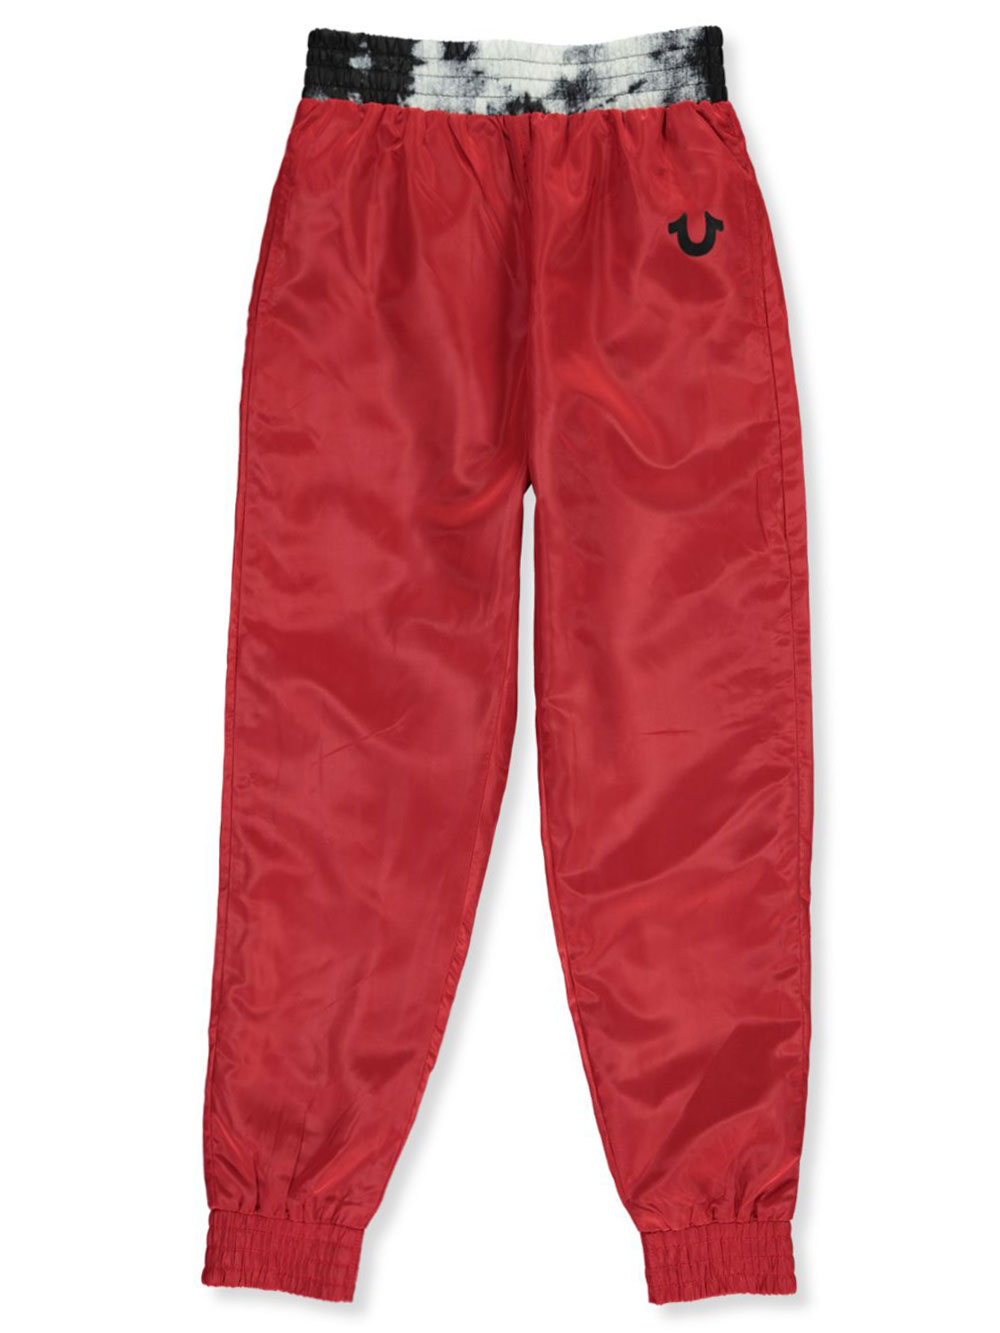 Girls Red Sweatpants and Joggers